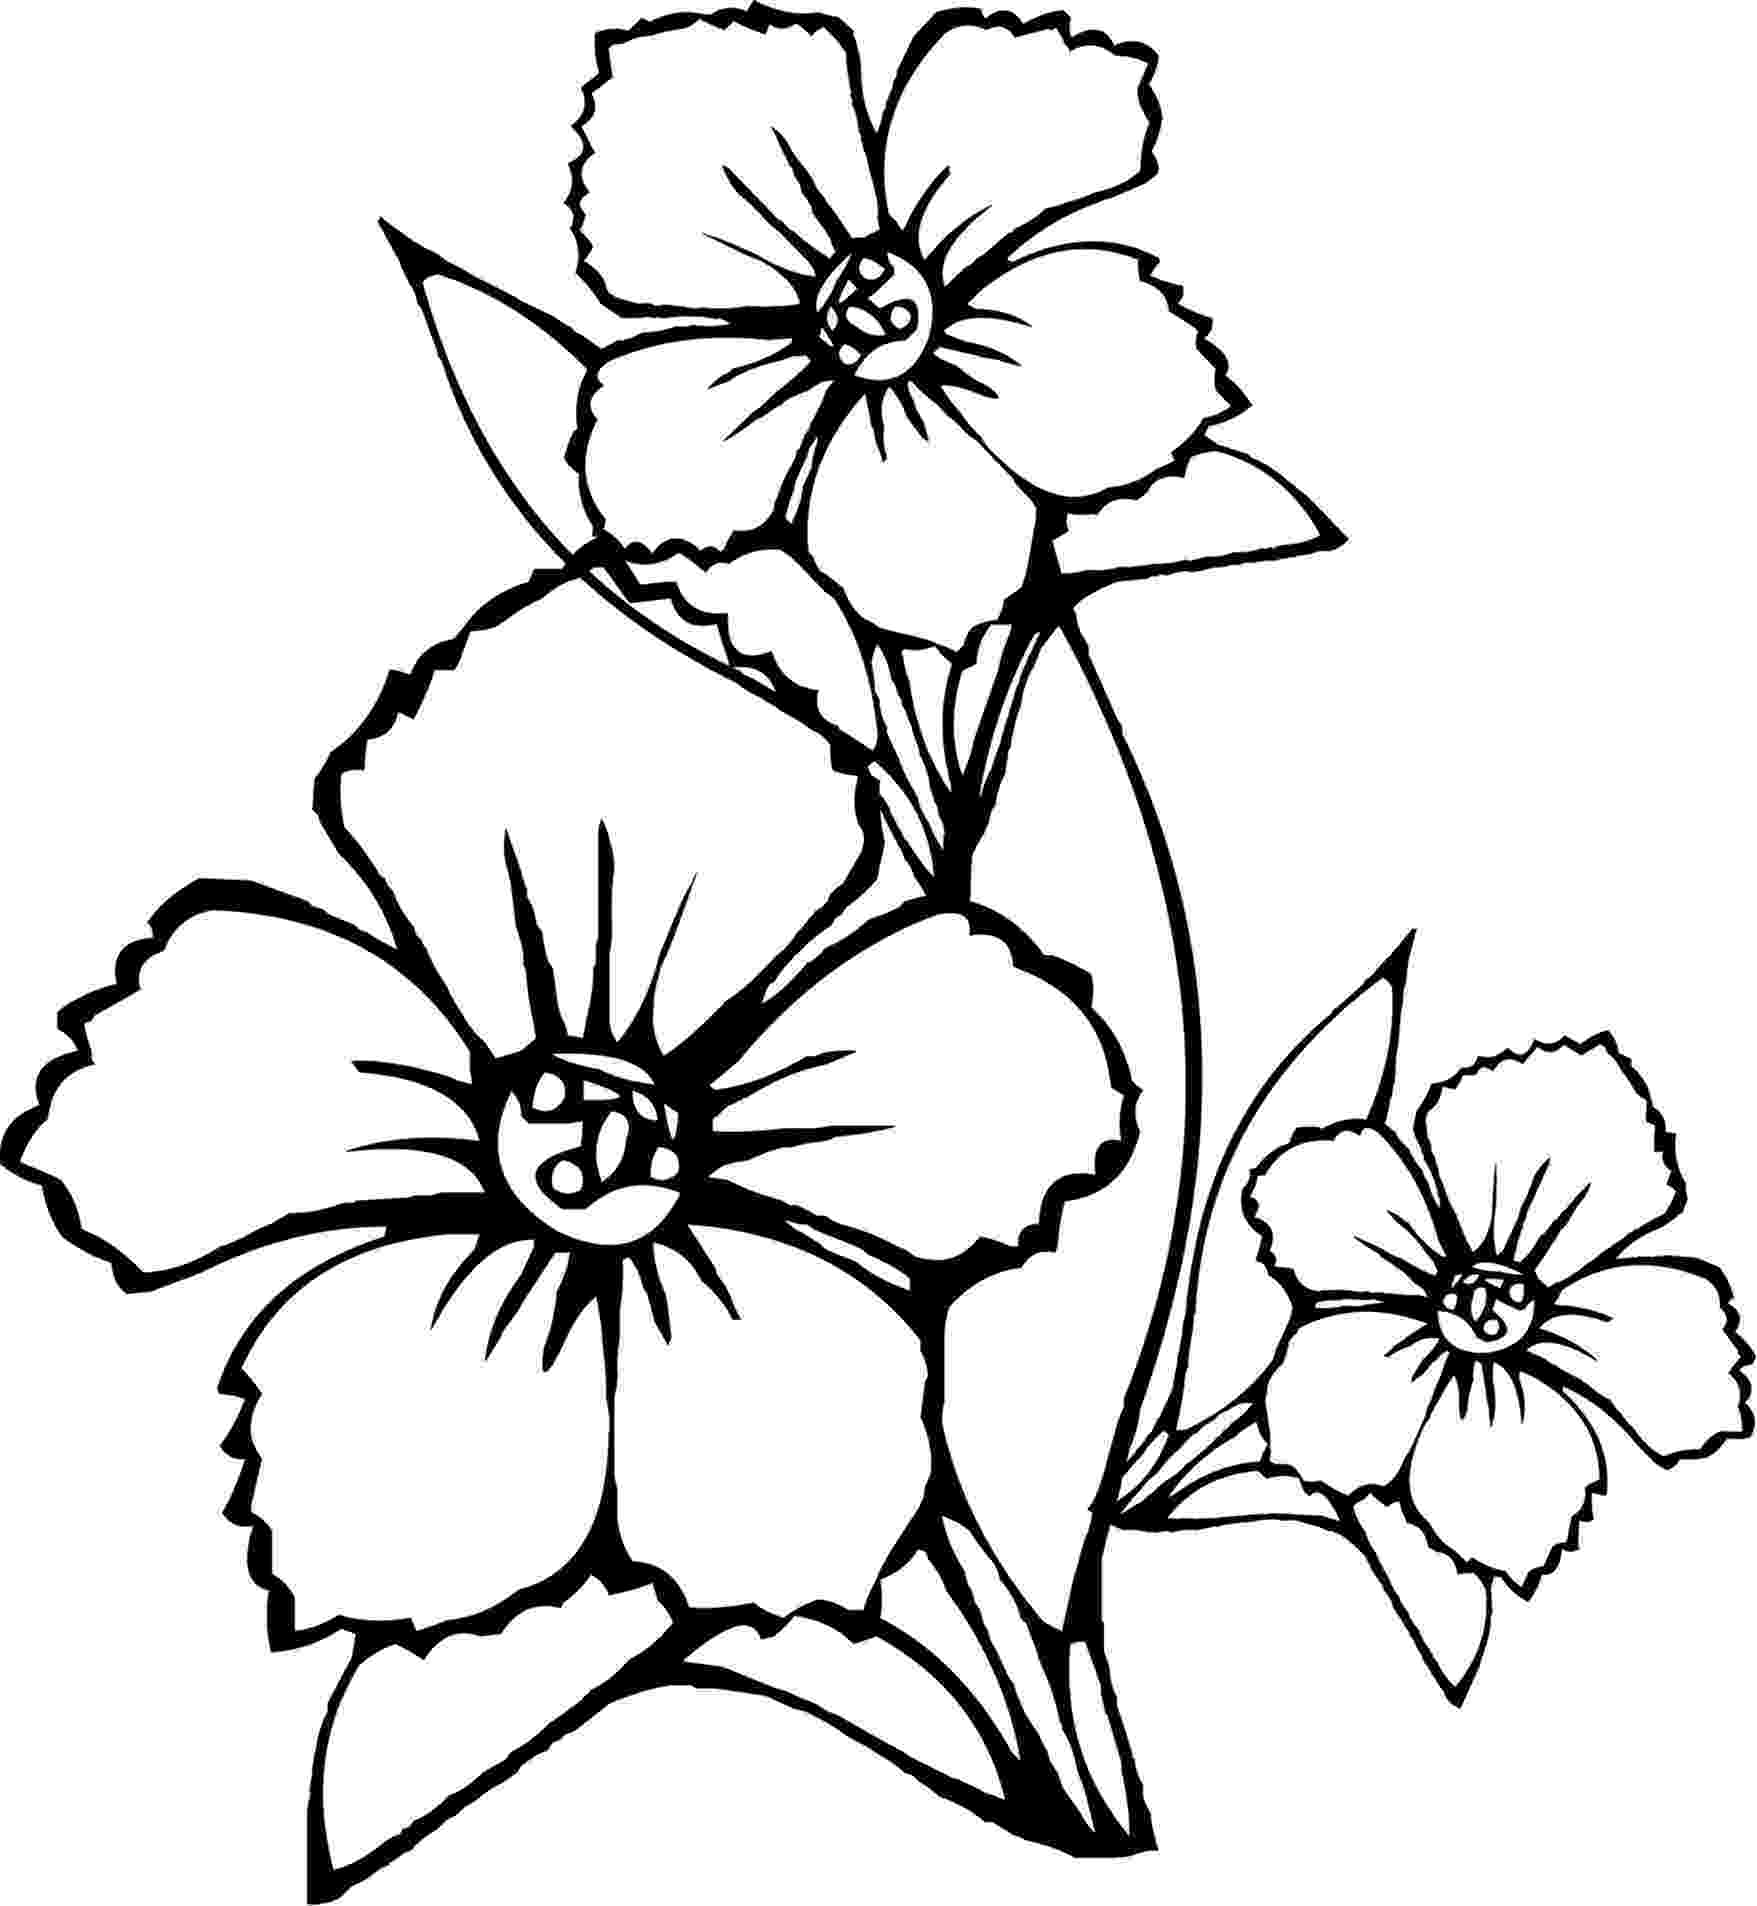 printable colouring flower pages free printable flower coloring pages for kids best colouring pages flower printable